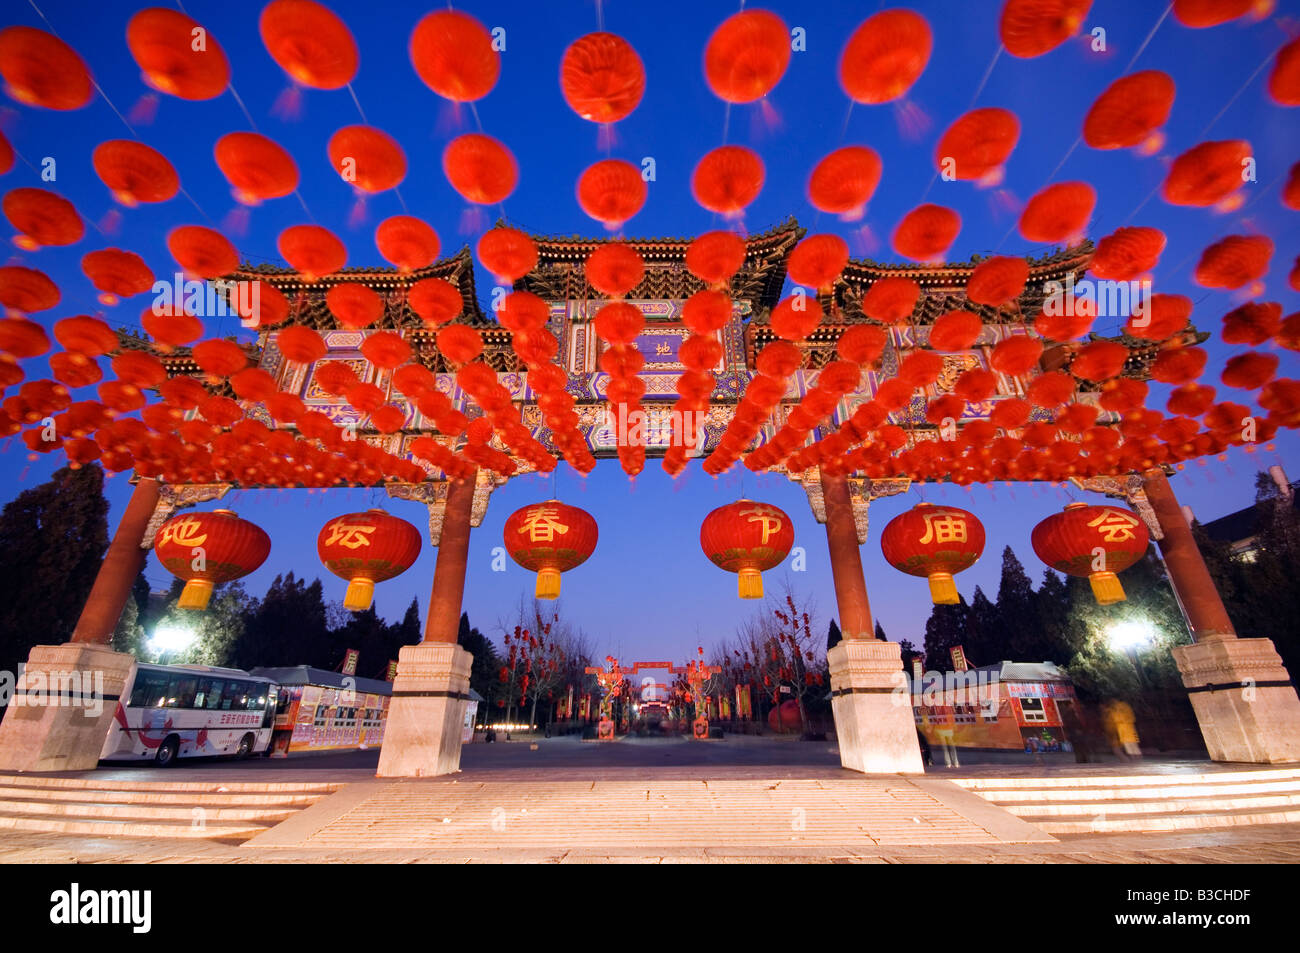 China, Beijing. Chinese New Year Spring Festival - red lantern decorations at Ditan Park temple fair. - Stock Image